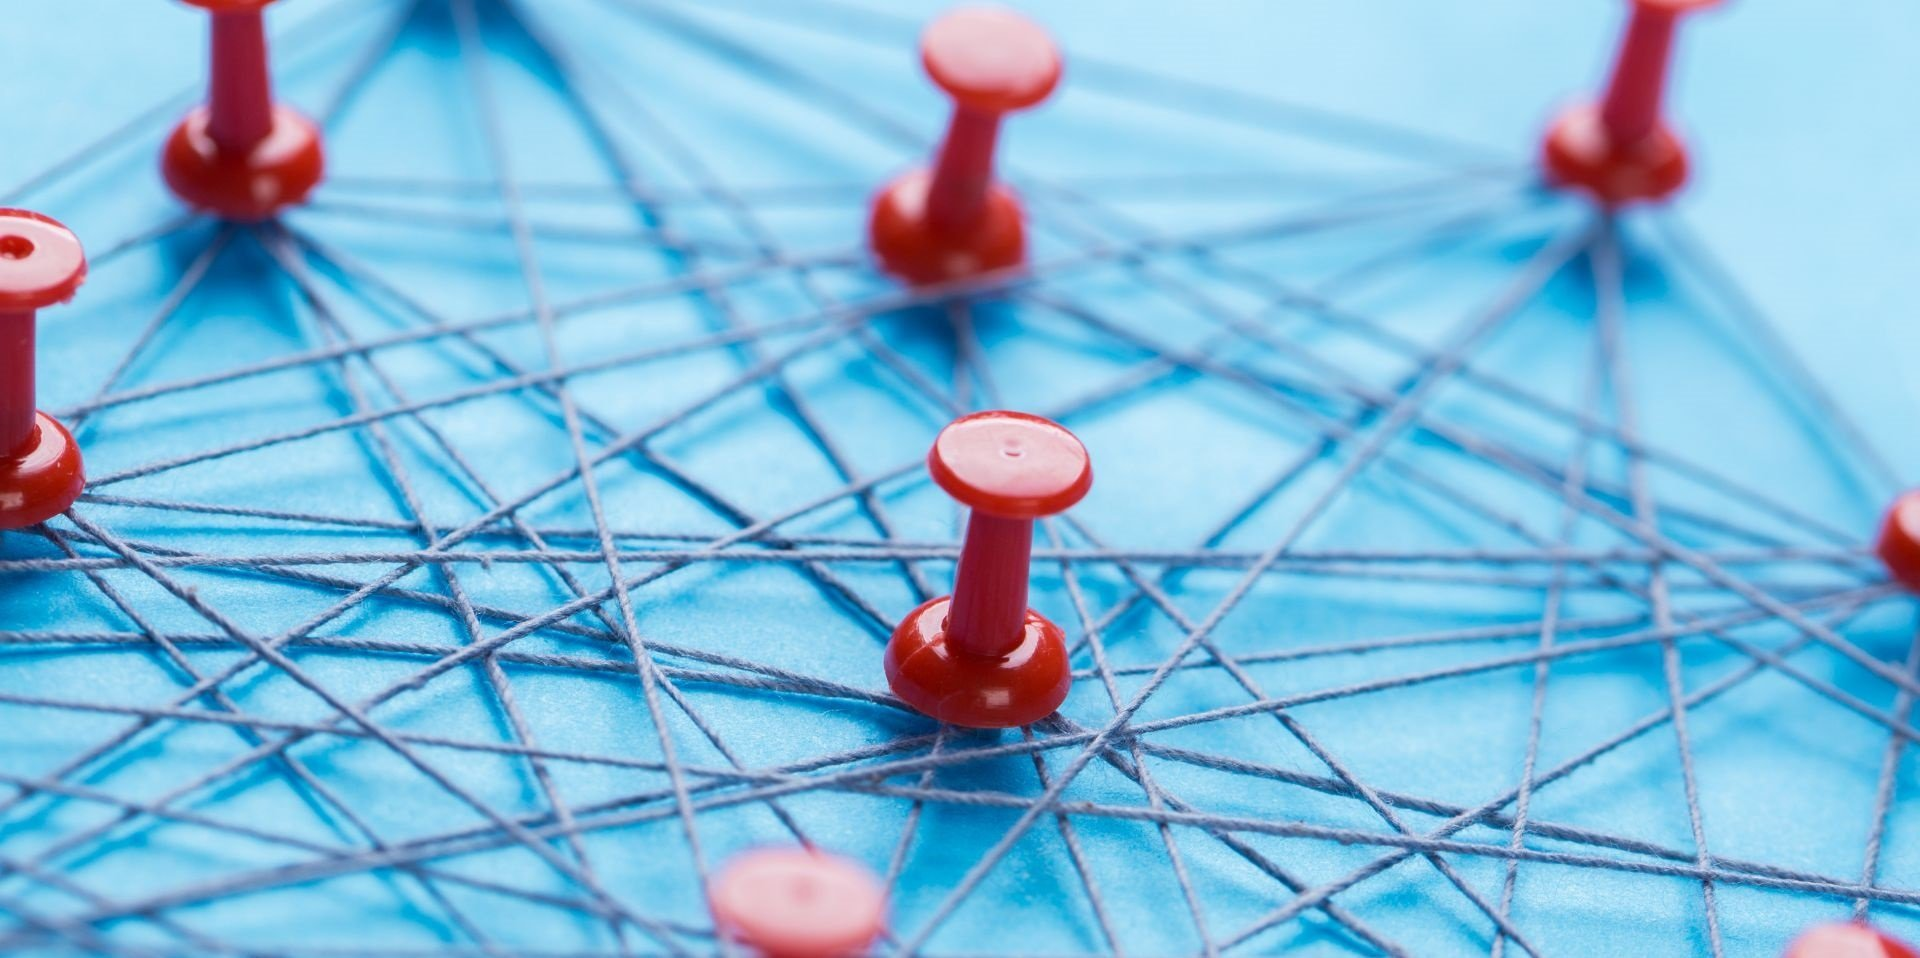 Close-up of the pins connected to each other by a string